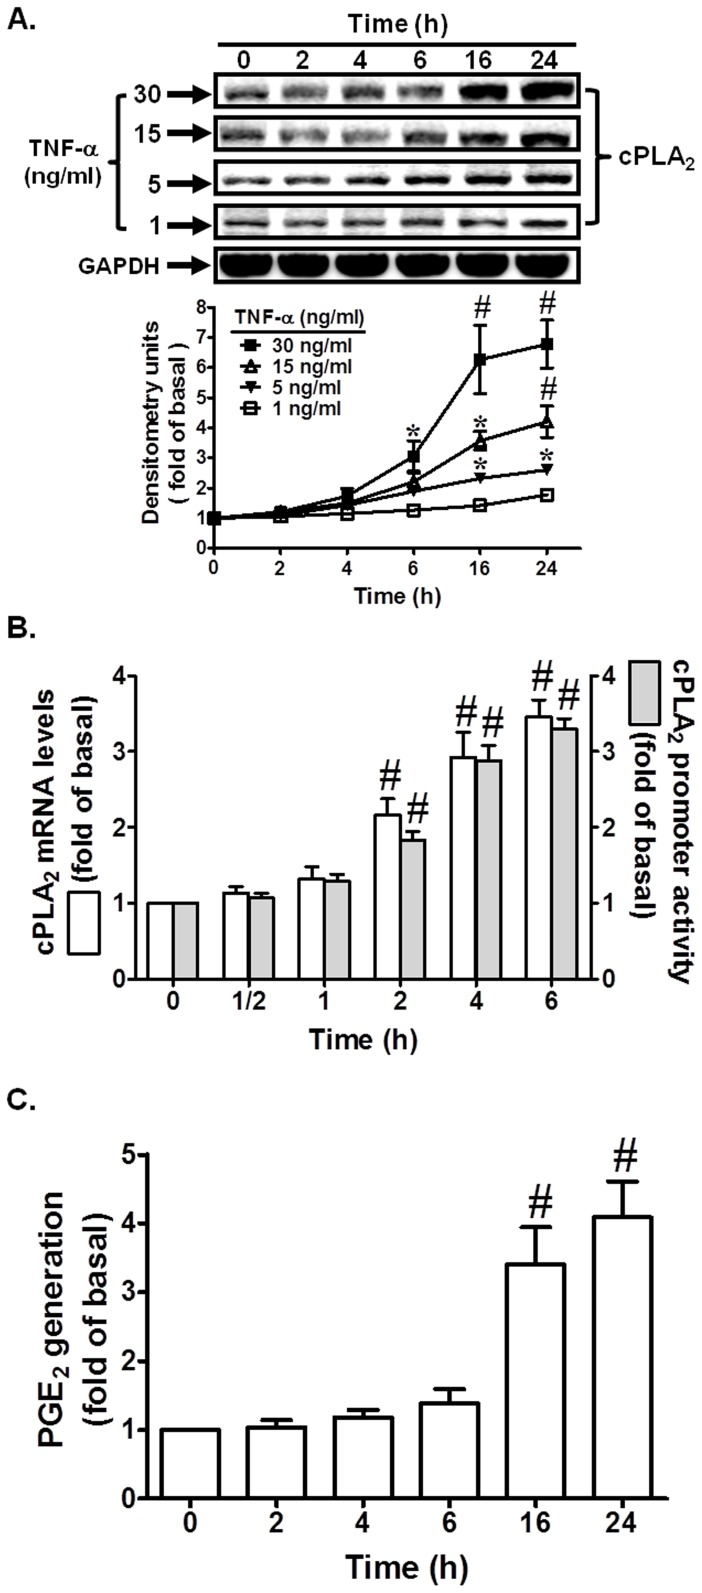 TNF-α induces cPLA 2 protein and mRNA expression. Cells were incubated with TNF-α for the indicated time intervals. (A) The protein levels of cPLA 2 were determined by Western blot, (B) the mRNA levels of cPLA 2 were determined by real-time PCR, and the promoter activity of cPLA 2 was determined in the cell lysates. (C) Cells were incubated with TNF-α (30 ng/ml) for the indicated time intervals. The media were collected and analyzed for PGE 2 release. Data are expressed as mean±S.E.M. of three independent experiments. * P